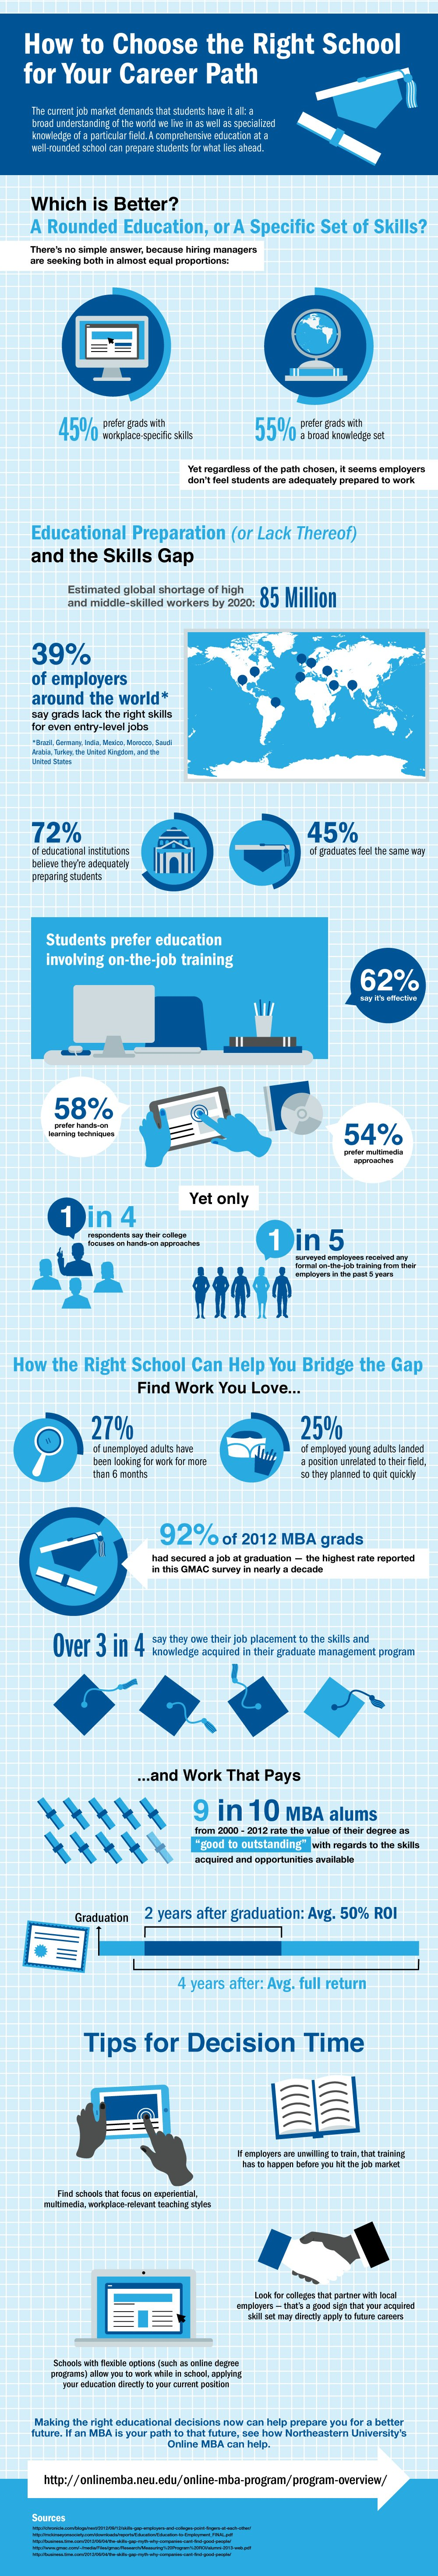 How to choose the right school for your career path